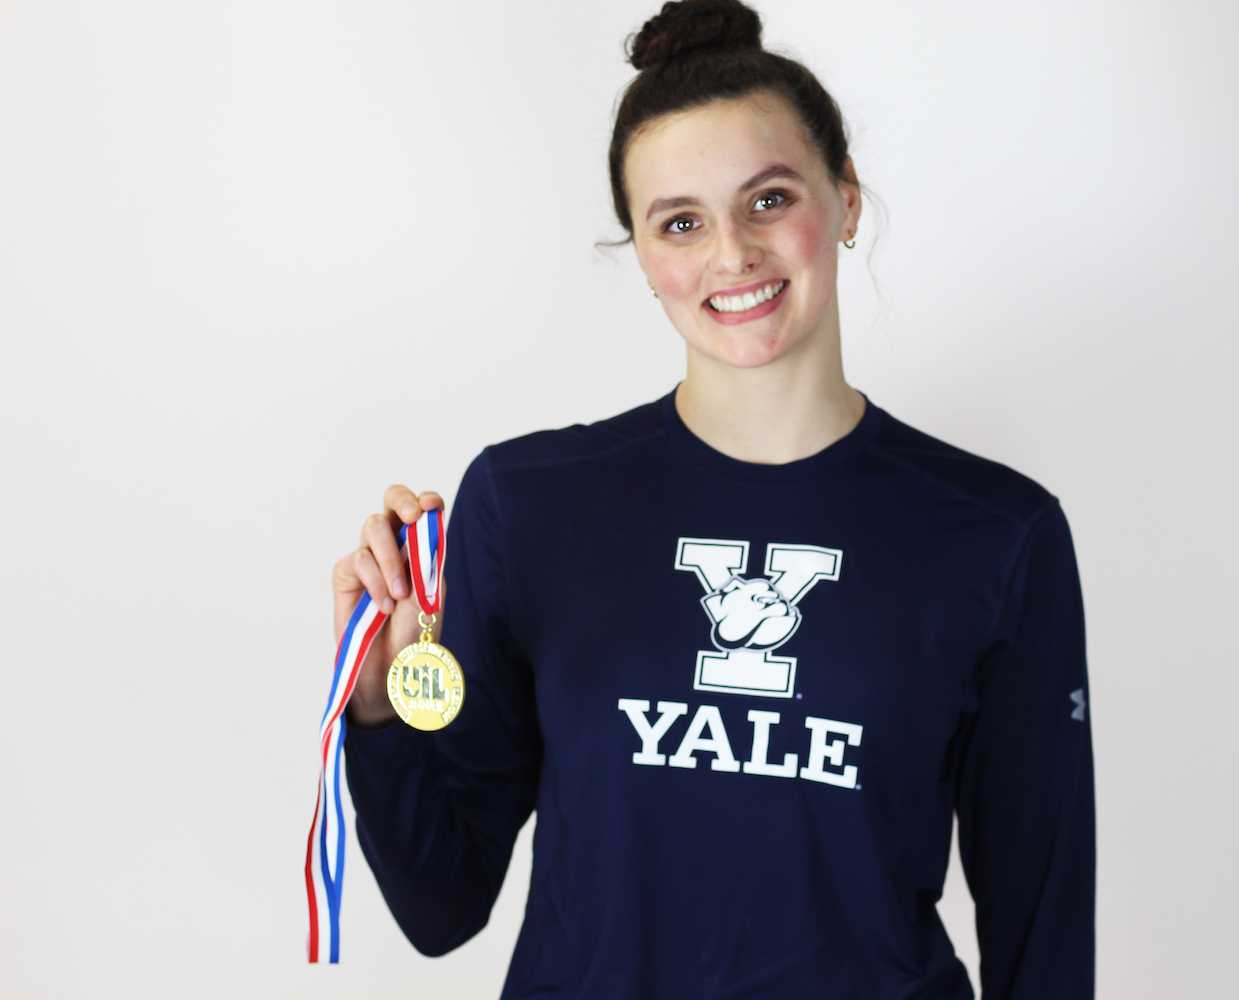 Senior Raime Jones, a future Yale student and swim team member, poses with her medal for winning the 500 meter freestyle at the 5A state meet.